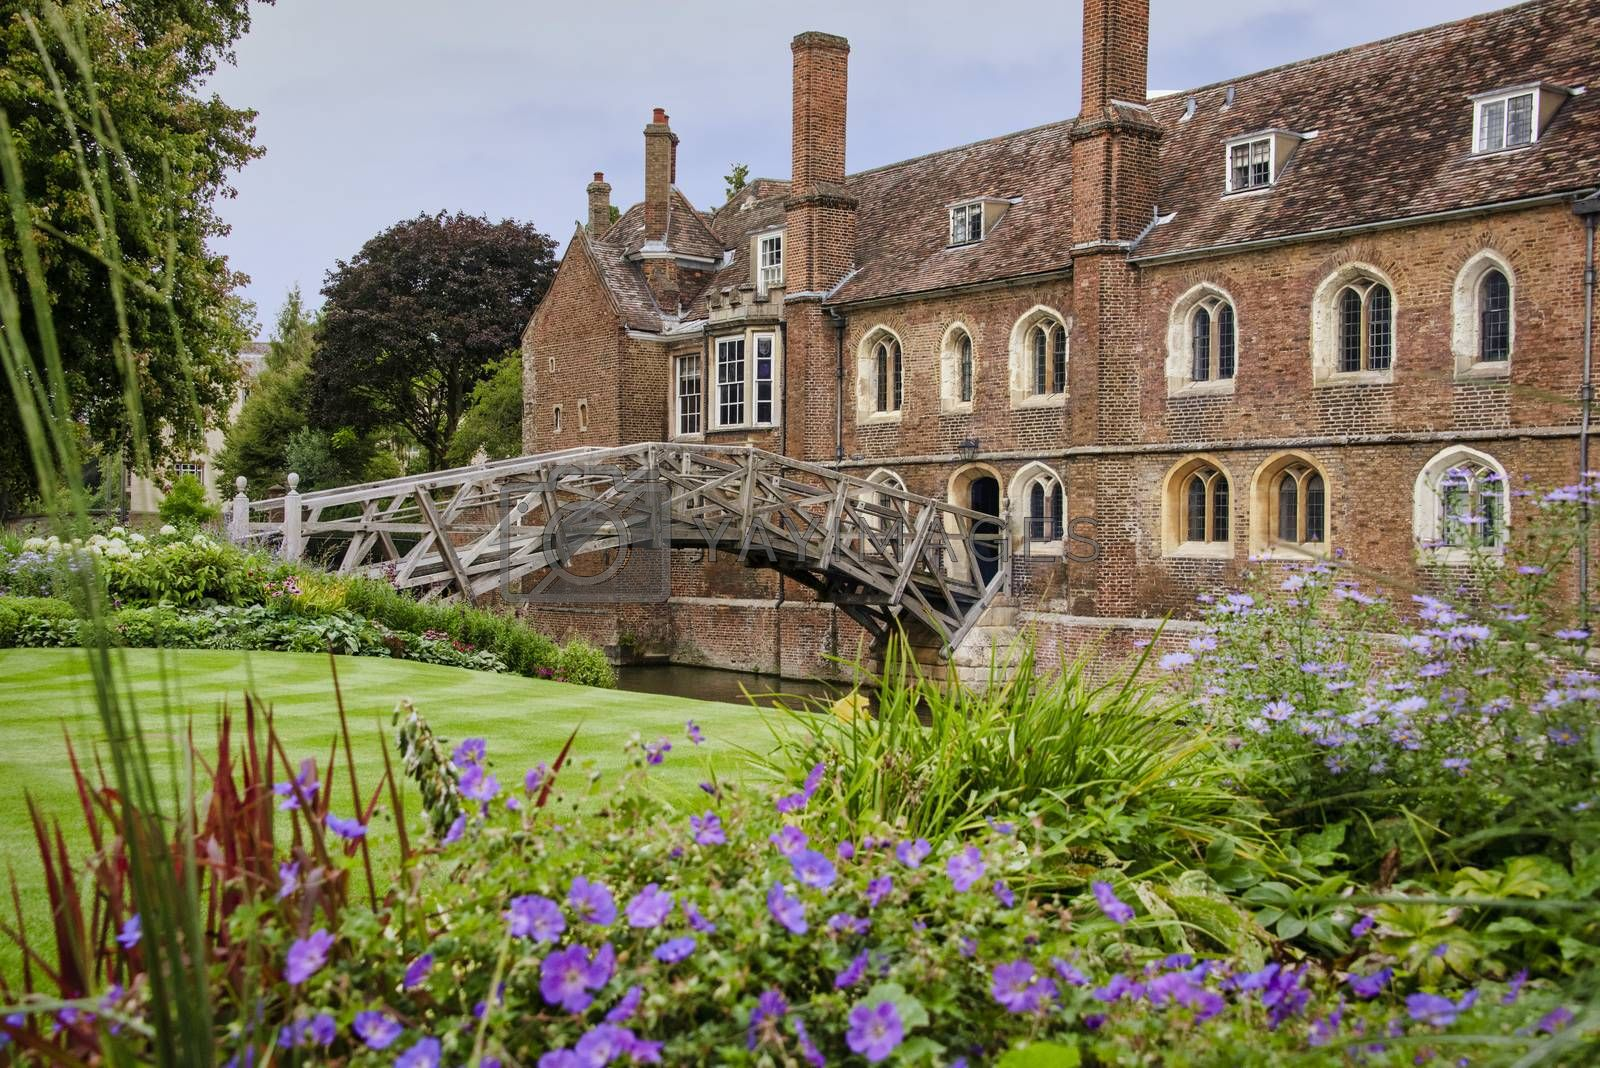 UK, Cambridge - August 2018: The Mathematical Bridge, in the grounds of Queens College